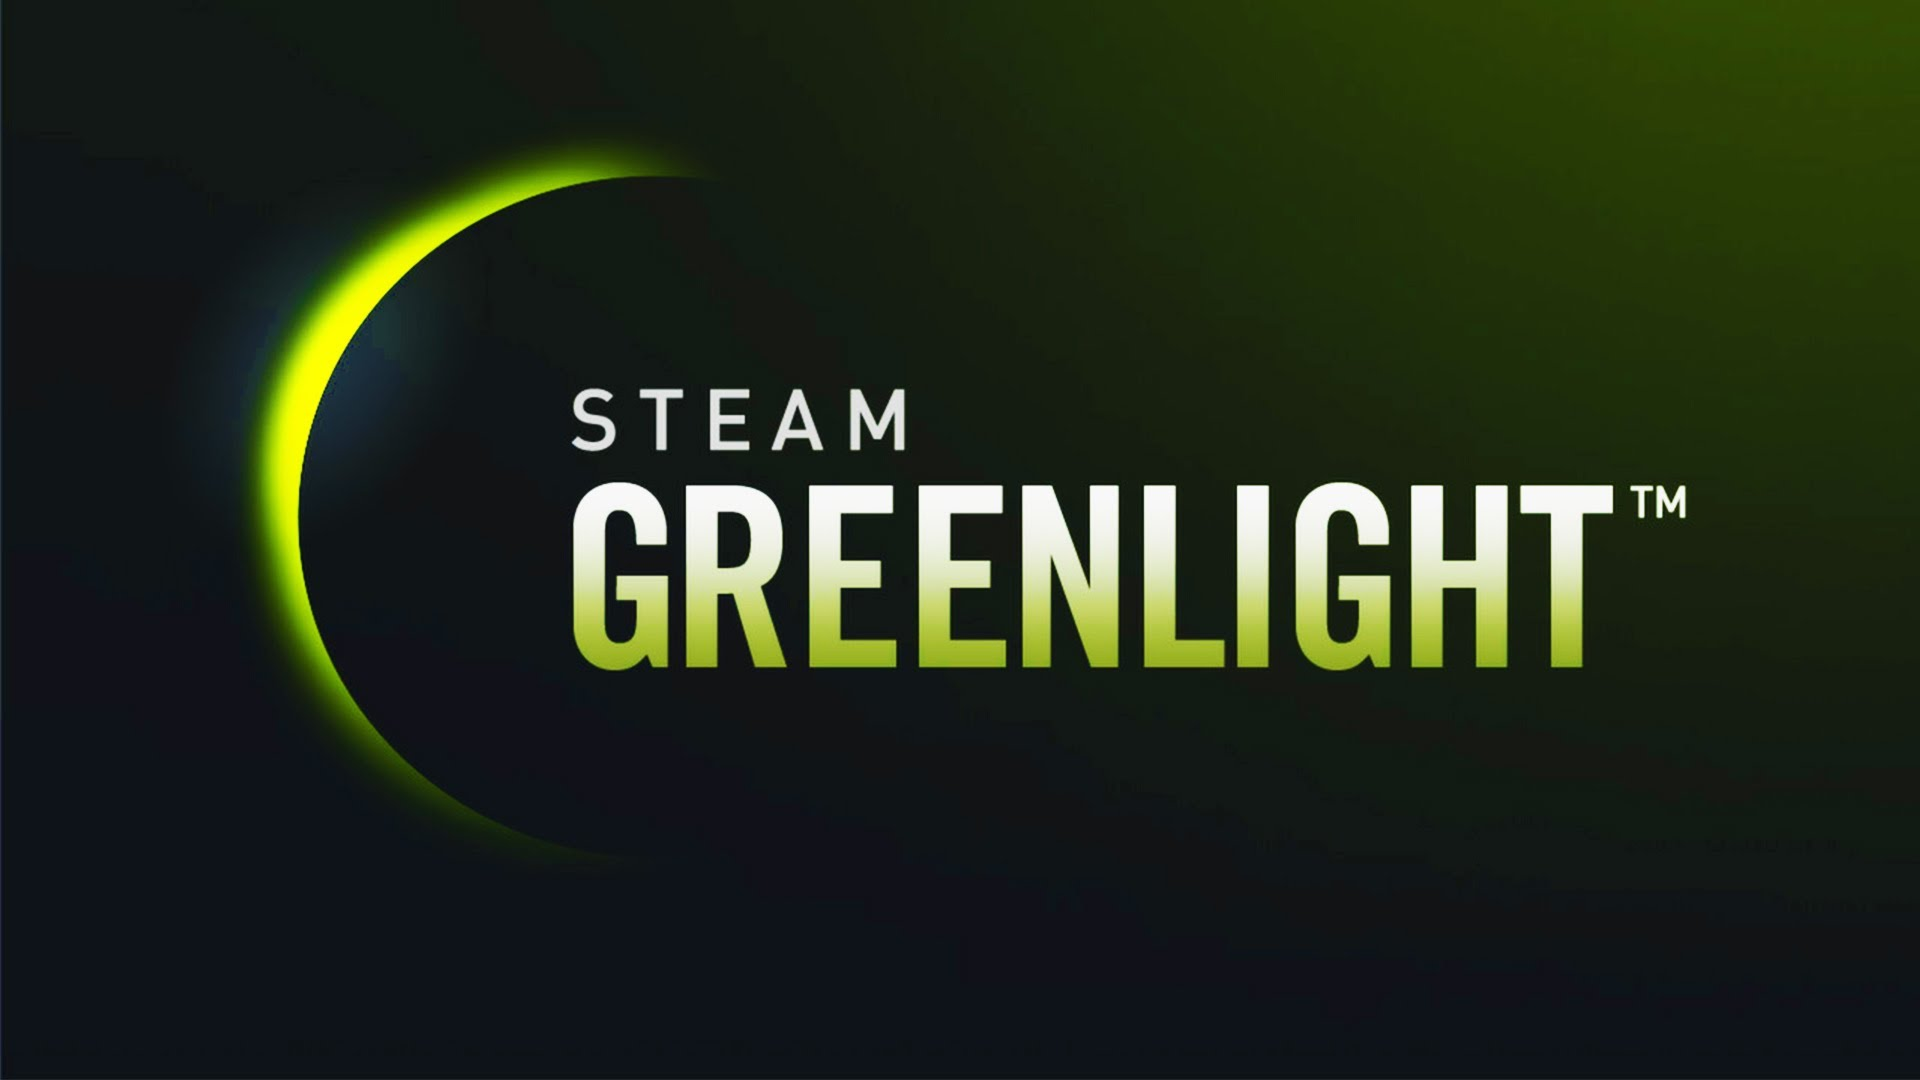 Il vecchio Steam Greenlight è morto, lunga vita a Steam Direct!